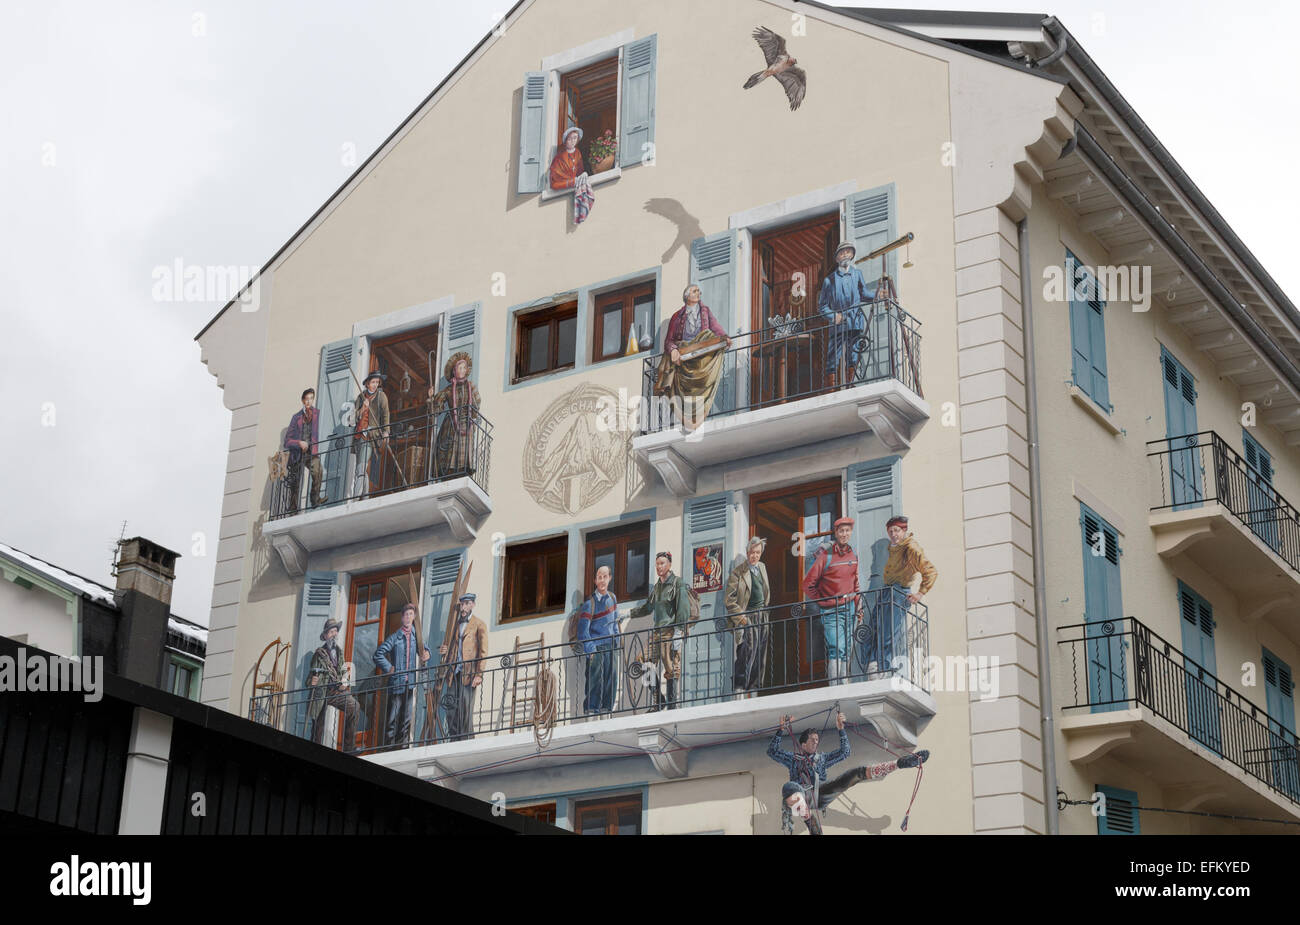 Mural painted on the wall of a building in Rue Doctier Paccard in Chamonix celebrates the Chamonix mountain guides - Stock Image